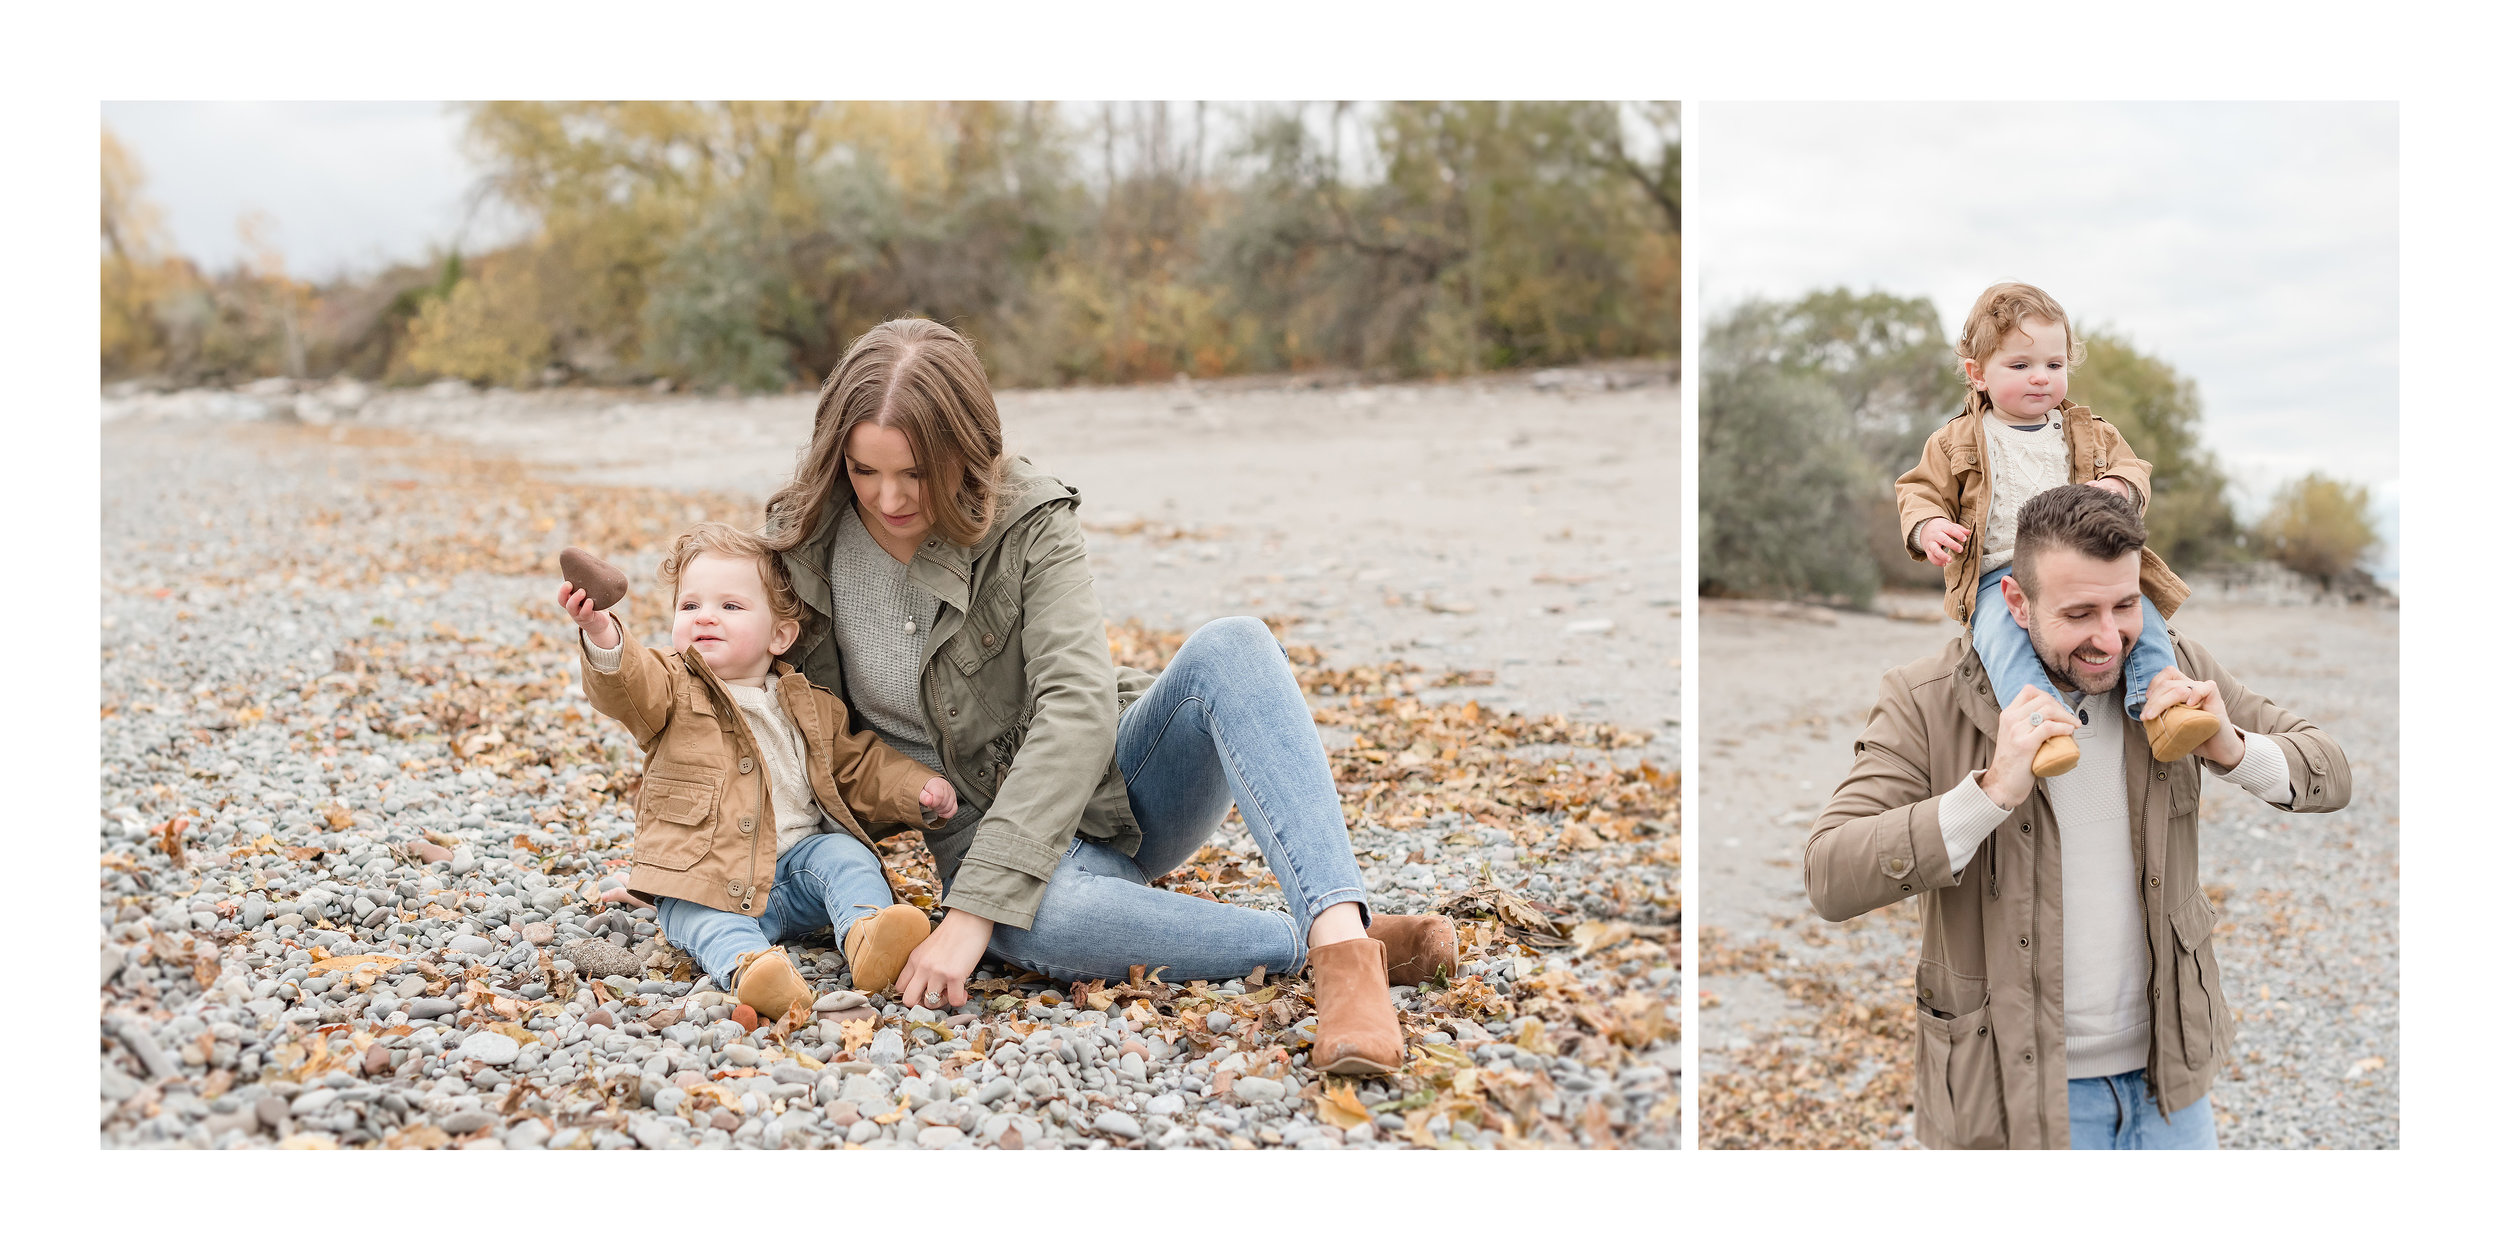 family playing with rocks on the beach